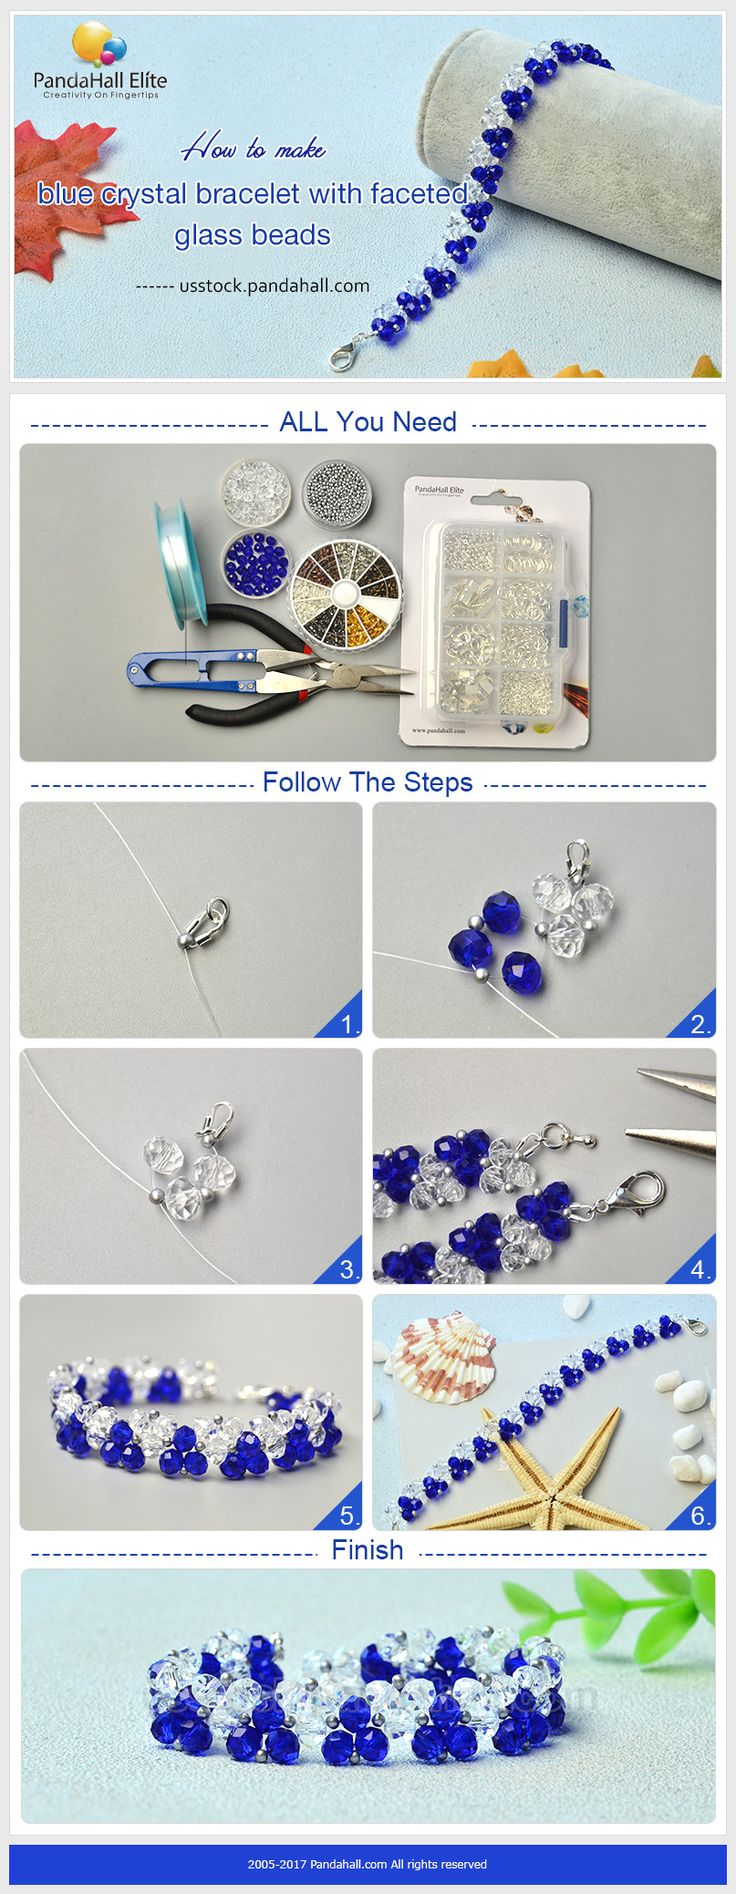 with eye pandahall crystals tutorial glass watch video beads jewelry for bracelet blue youtube earrings cat and making bead